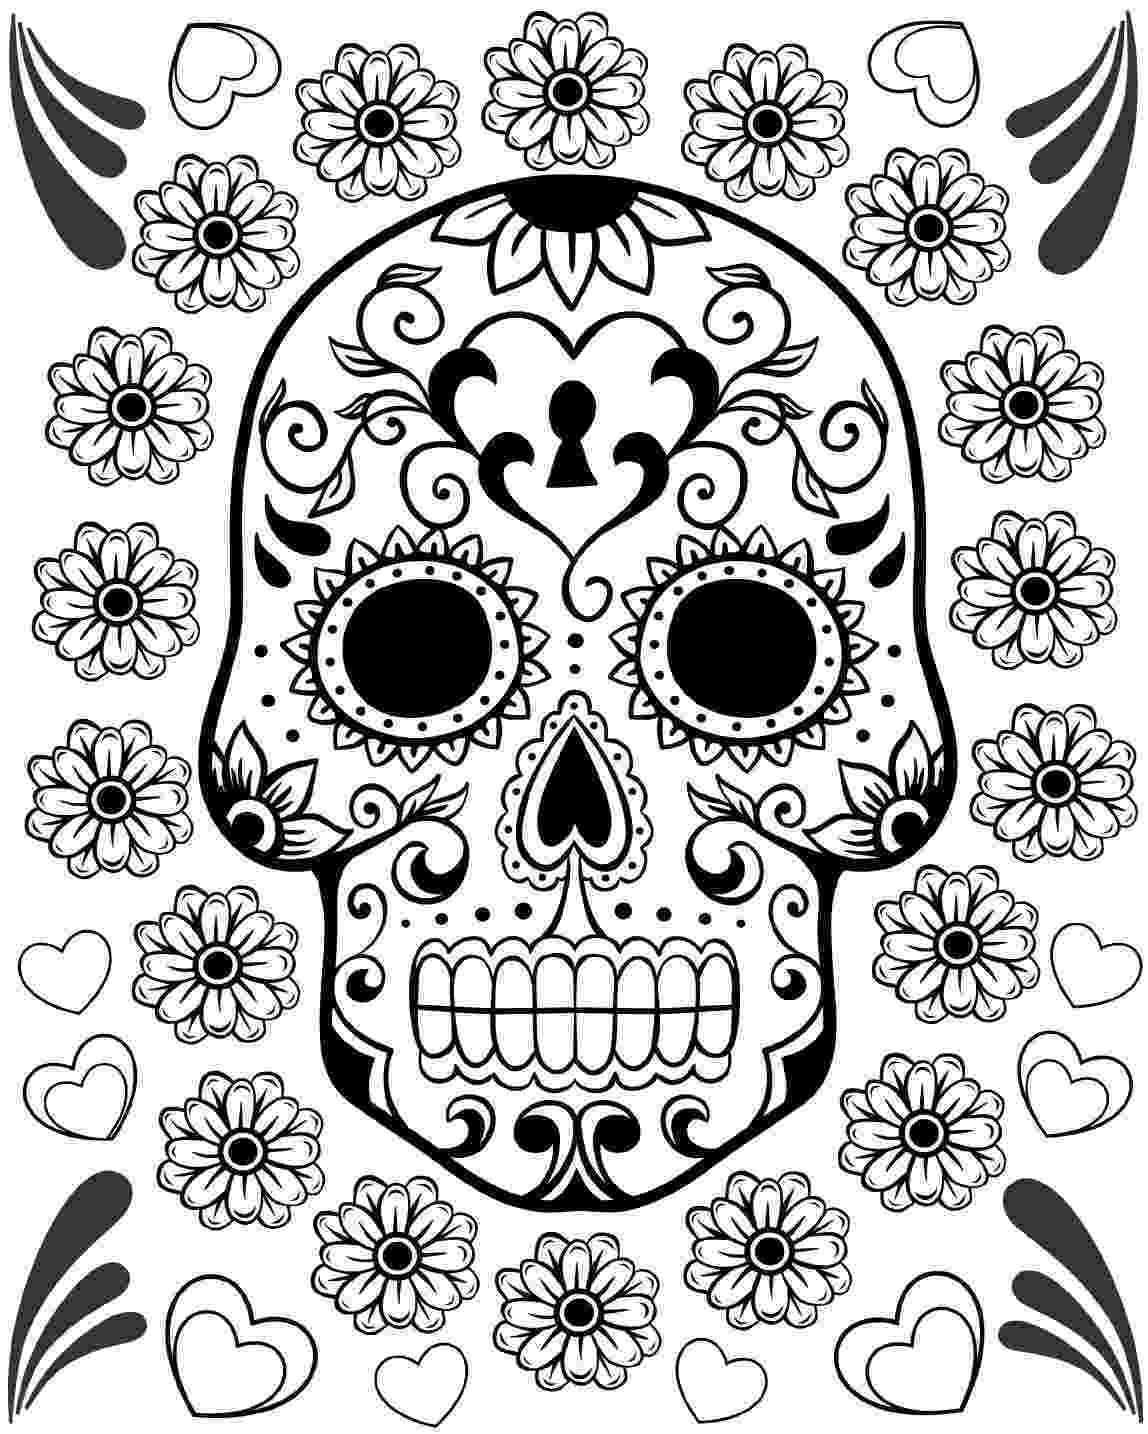 day of the dead printable pictures free printable day of the dead coloring pages best day printable the dead of pictures